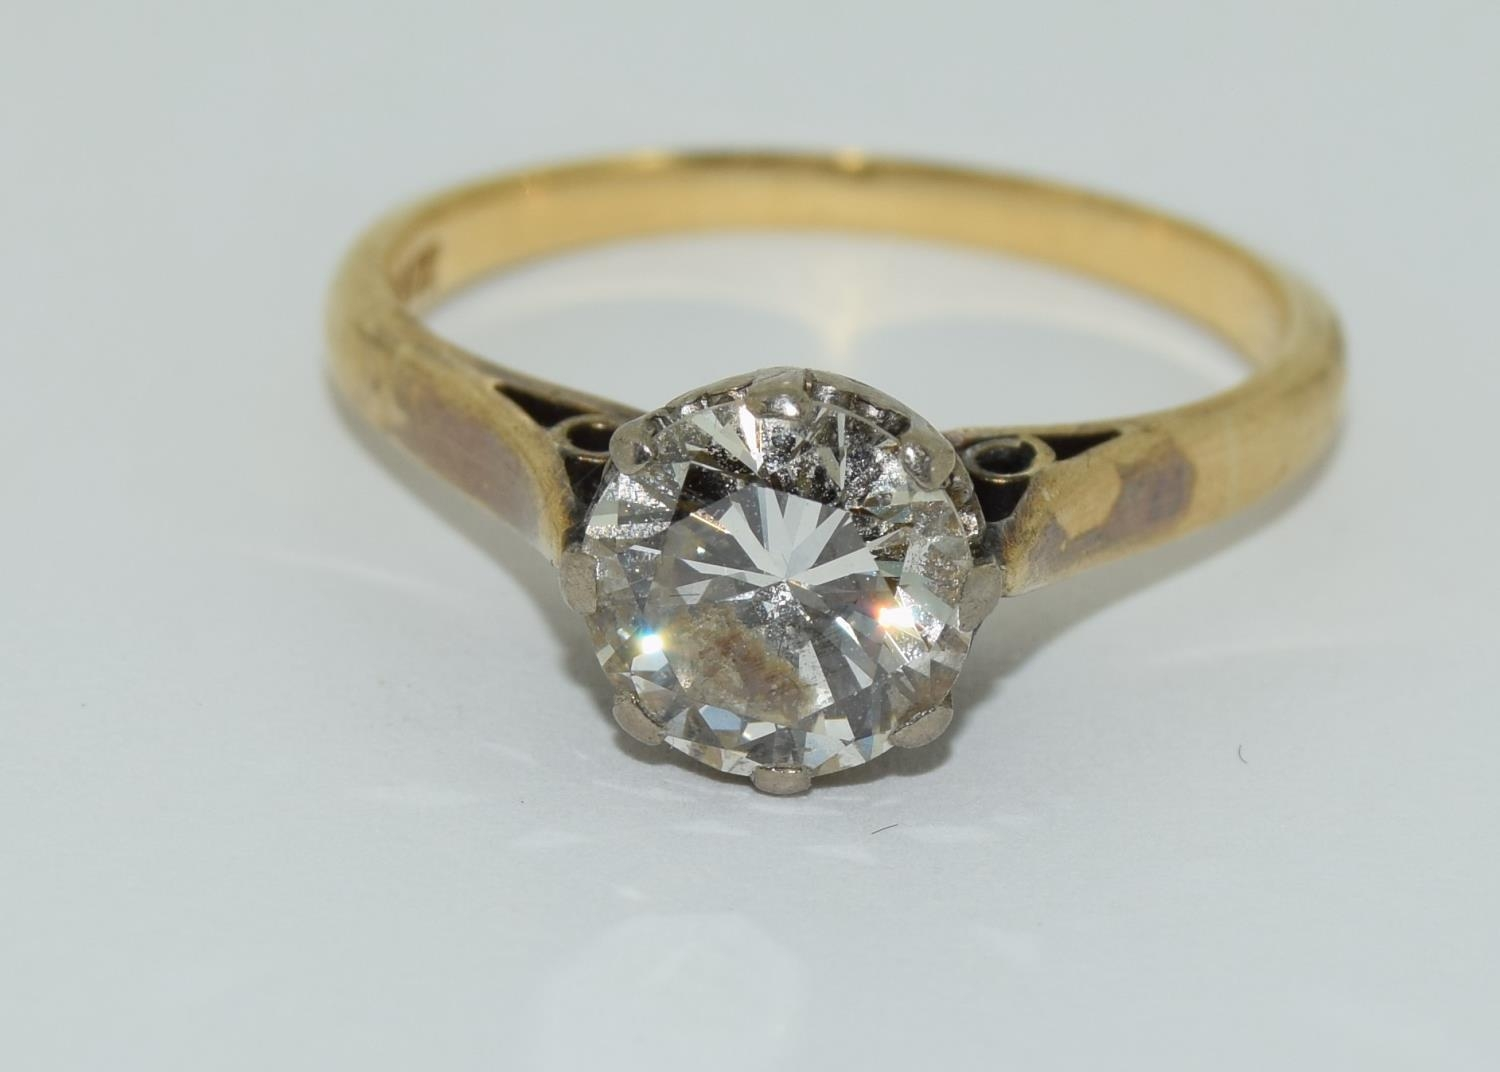 An 18ct gold ladies diamond solitaire ring approx 1.5ct, Size M. - Image 6 of 6